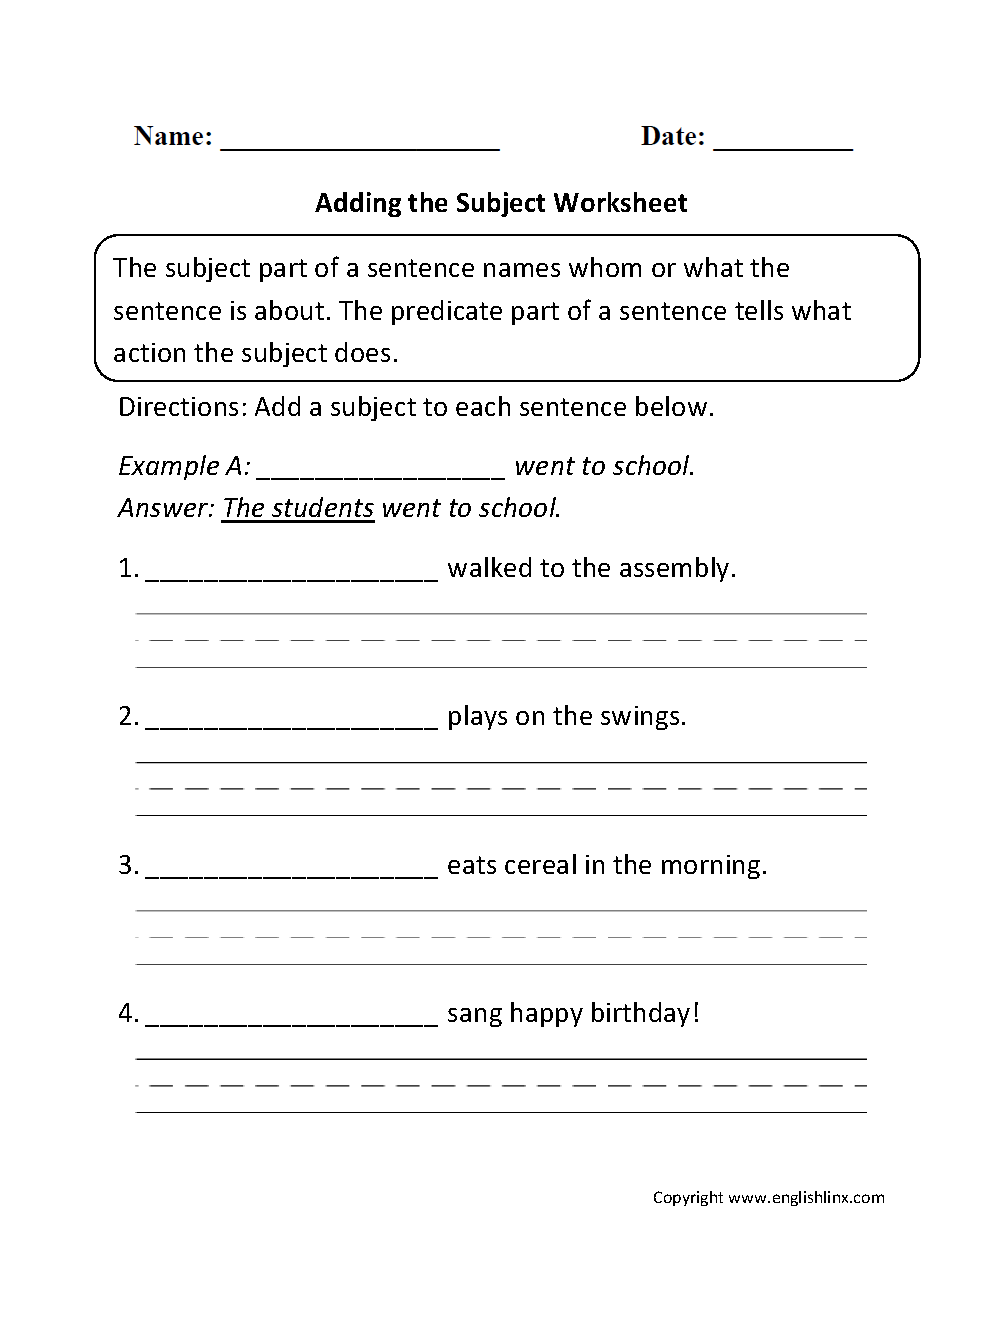 Subject And Predicate Worksheets Adding The Subject Worksheet In 2020 Subject And Predicate Worksheets Subject And Predicate Predicates [ 1331 x 1003 Pixel ]